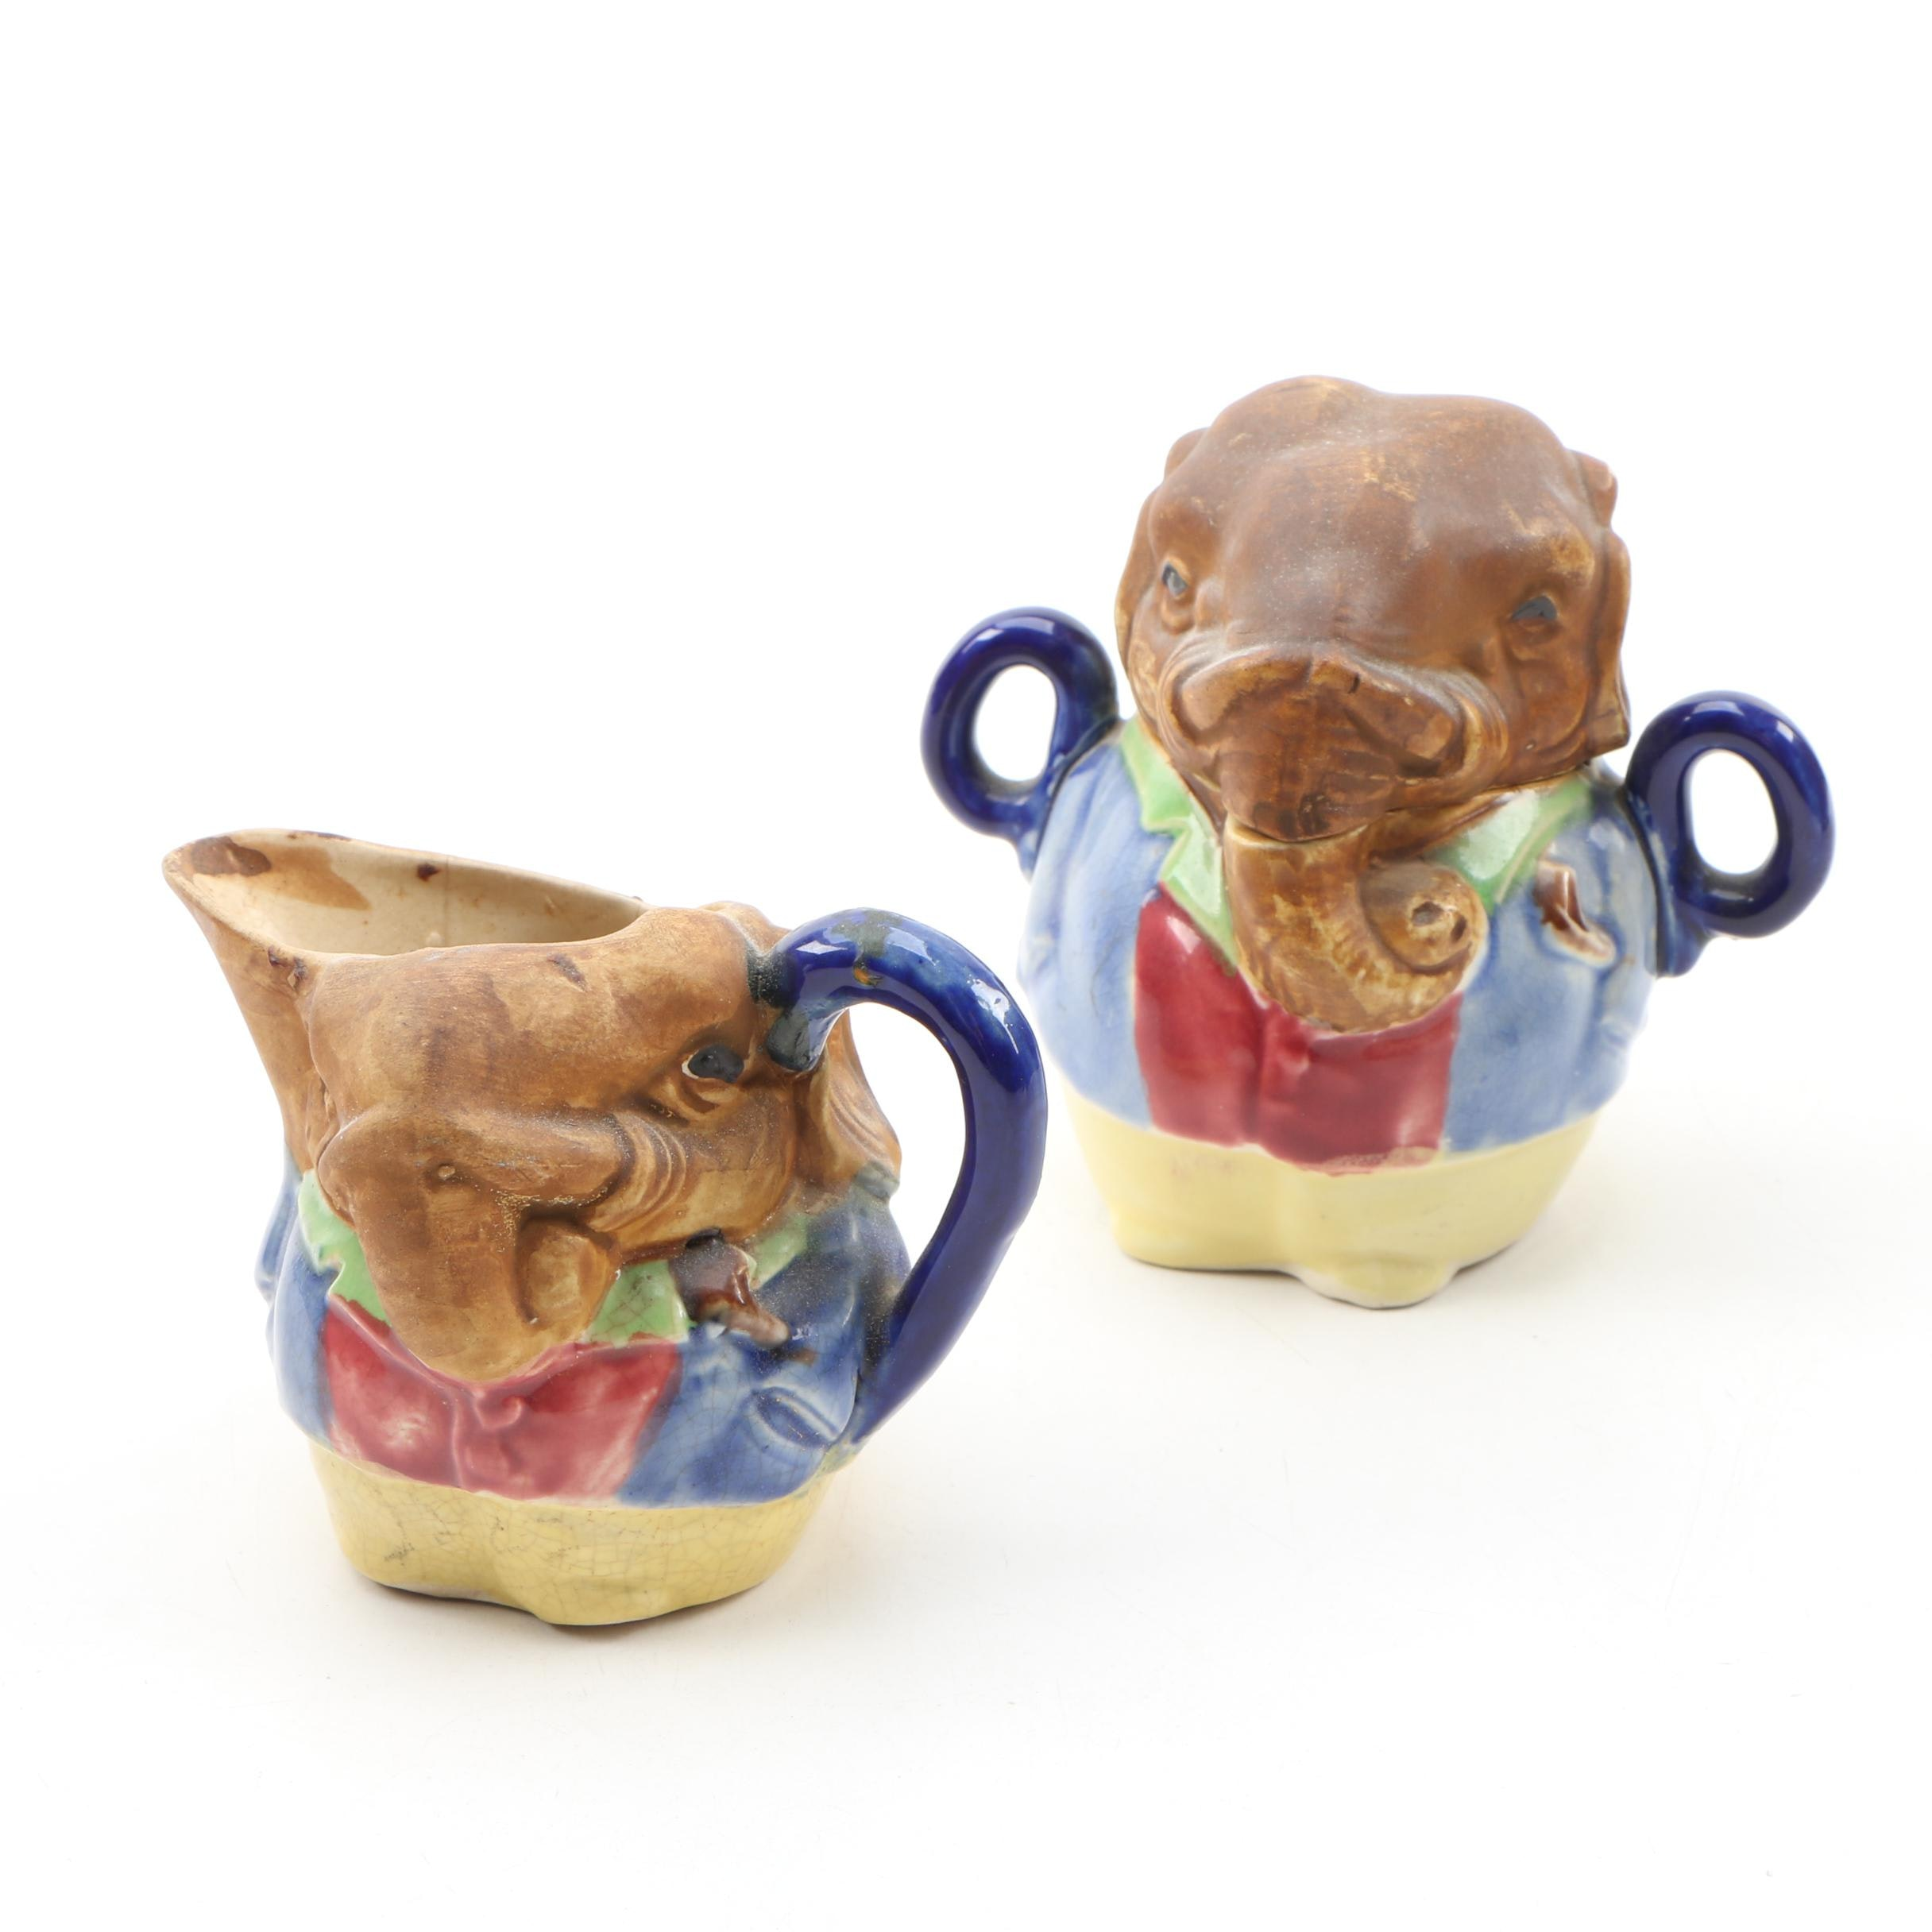 Ceramic Elephant Form Creamer and Lidded Sugar Bowl, 20th Century